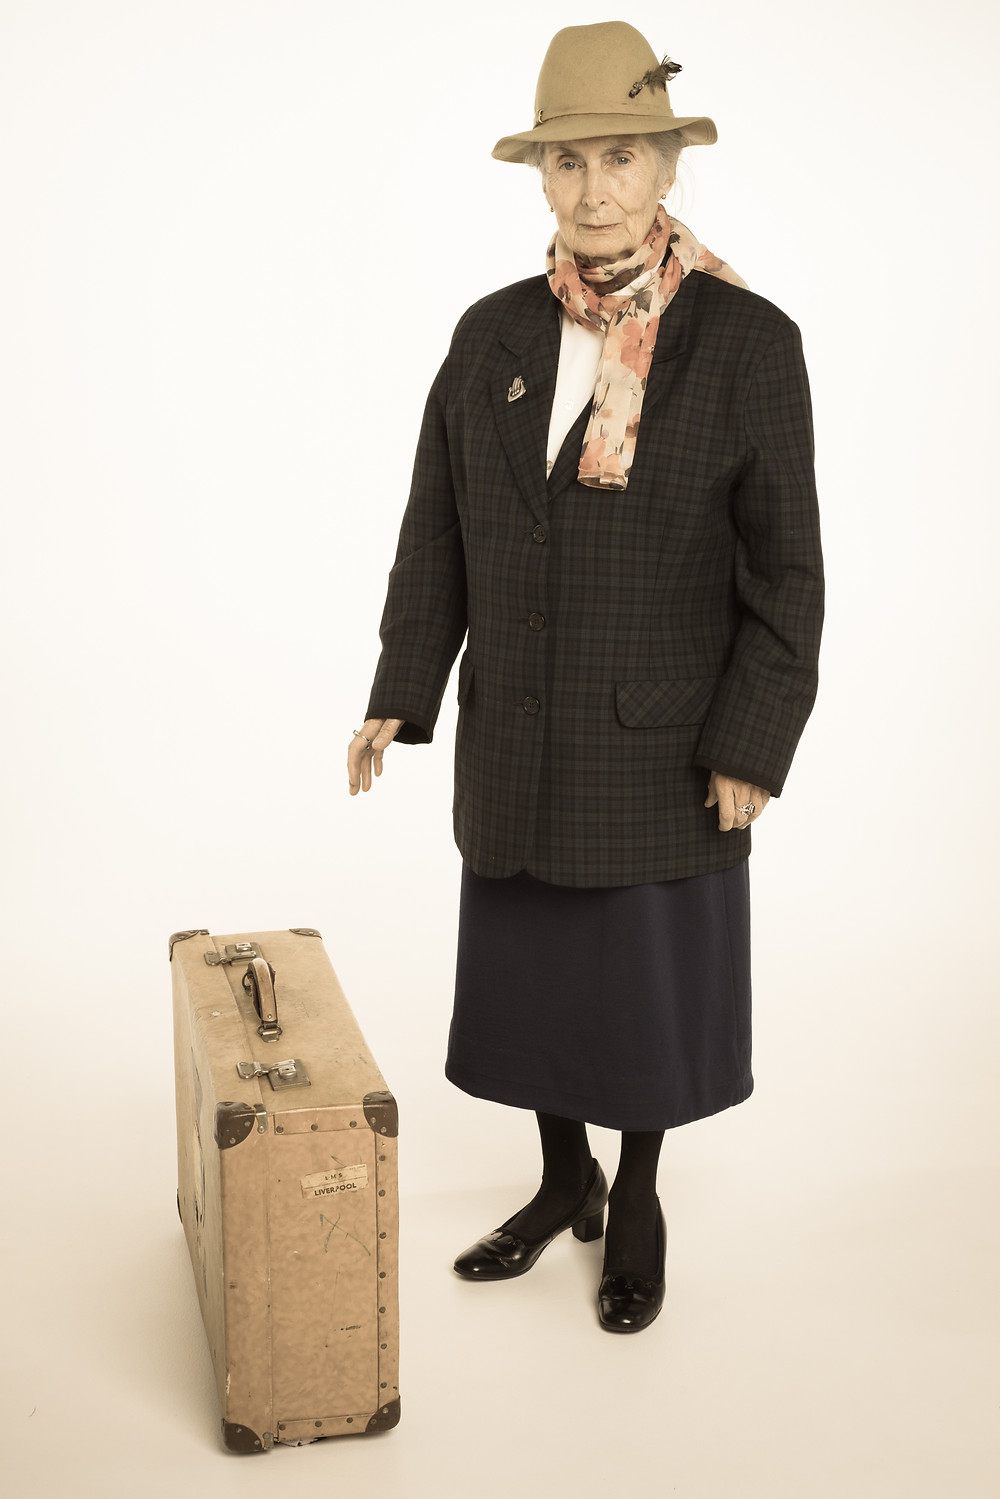 Mum's Friend Susan models for a travel book called 'Broads Abroad - Worldly Wise.'